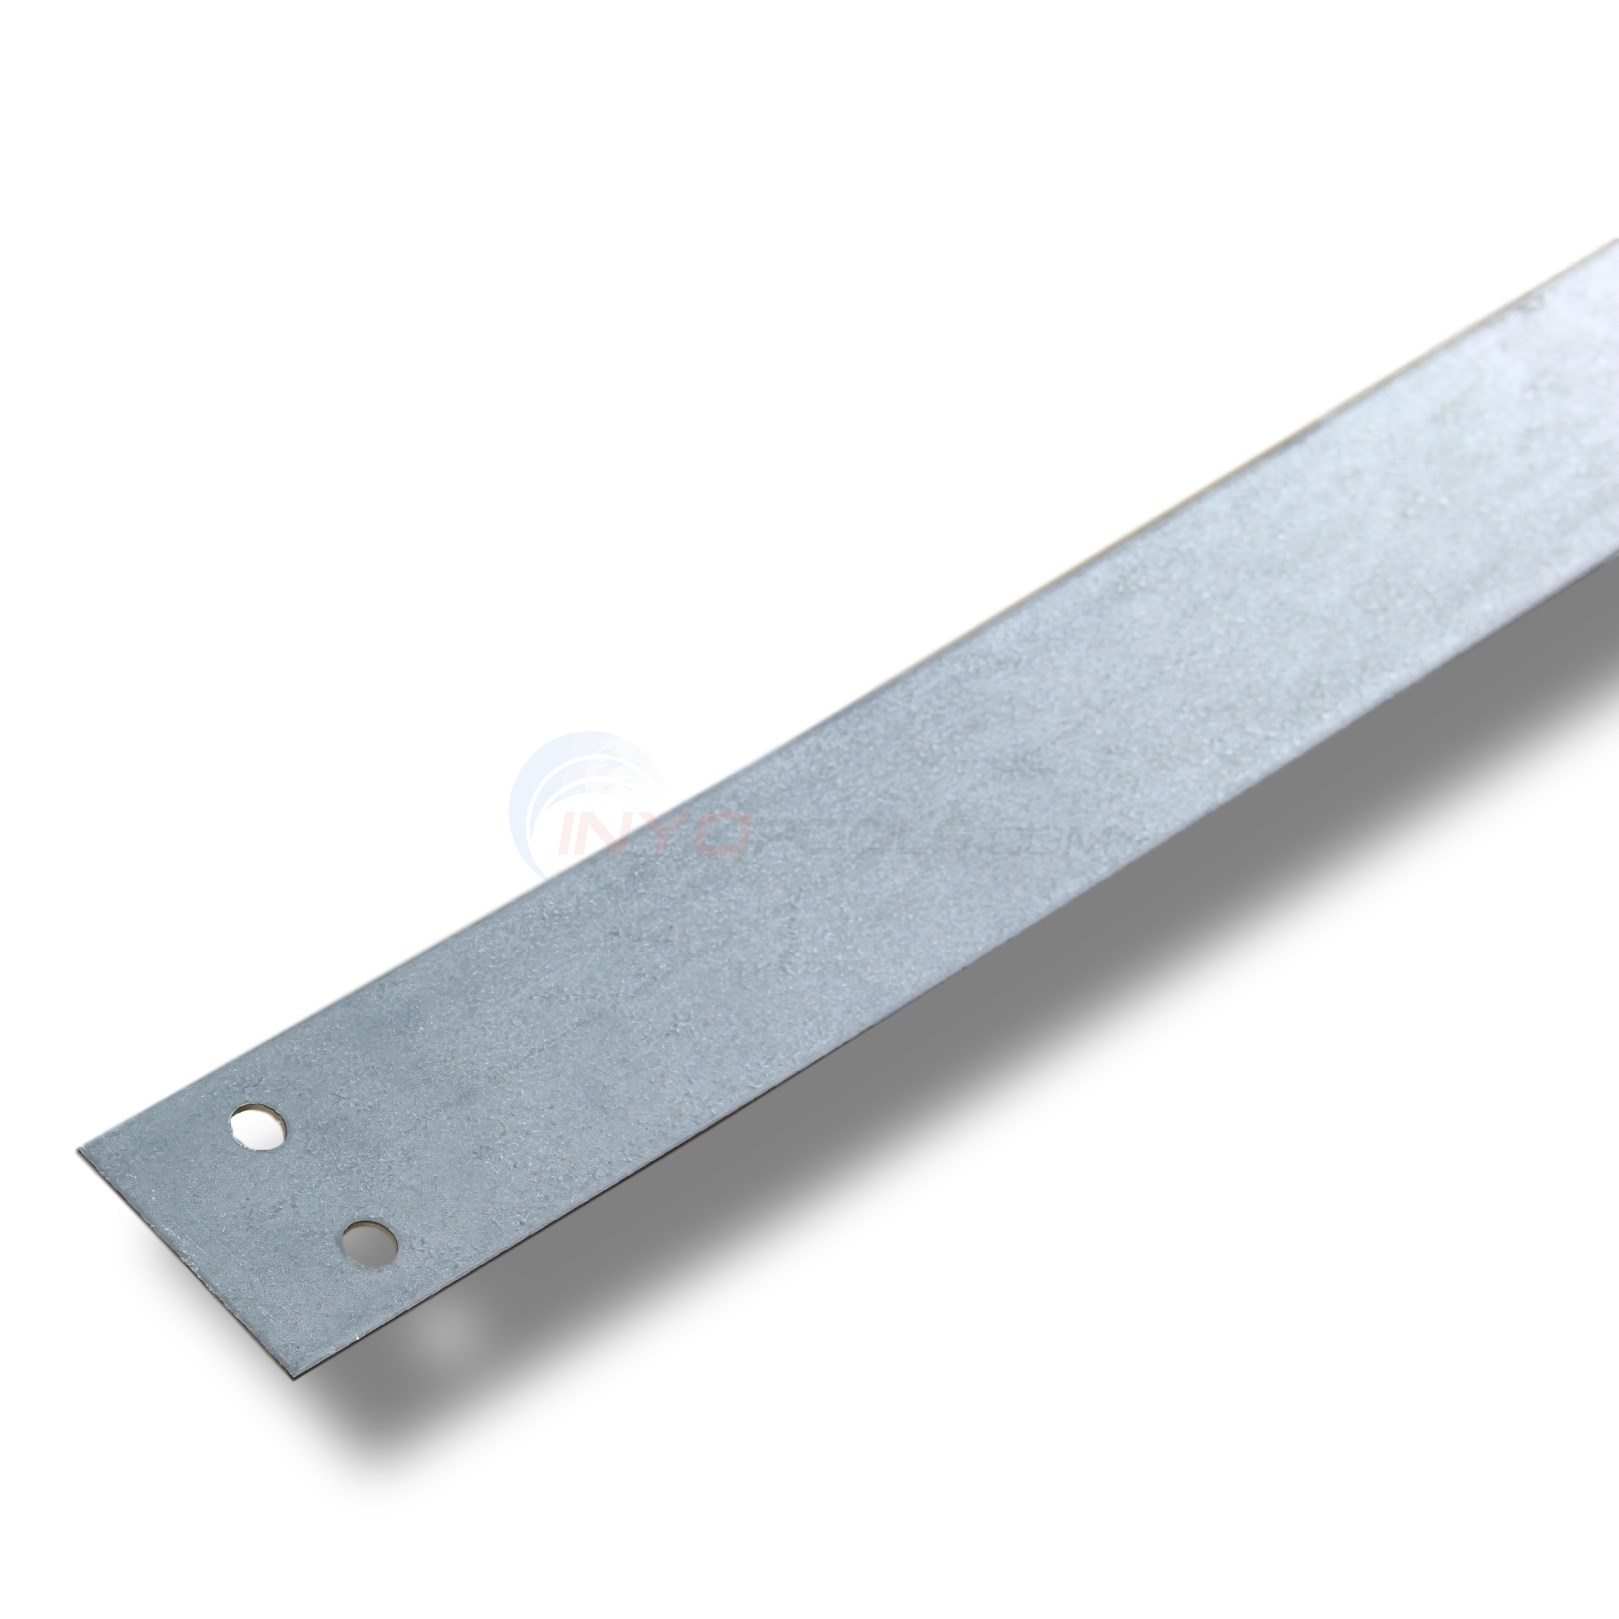 "Wilbar Strap Section 41-11/16"" (Single) - 16724"